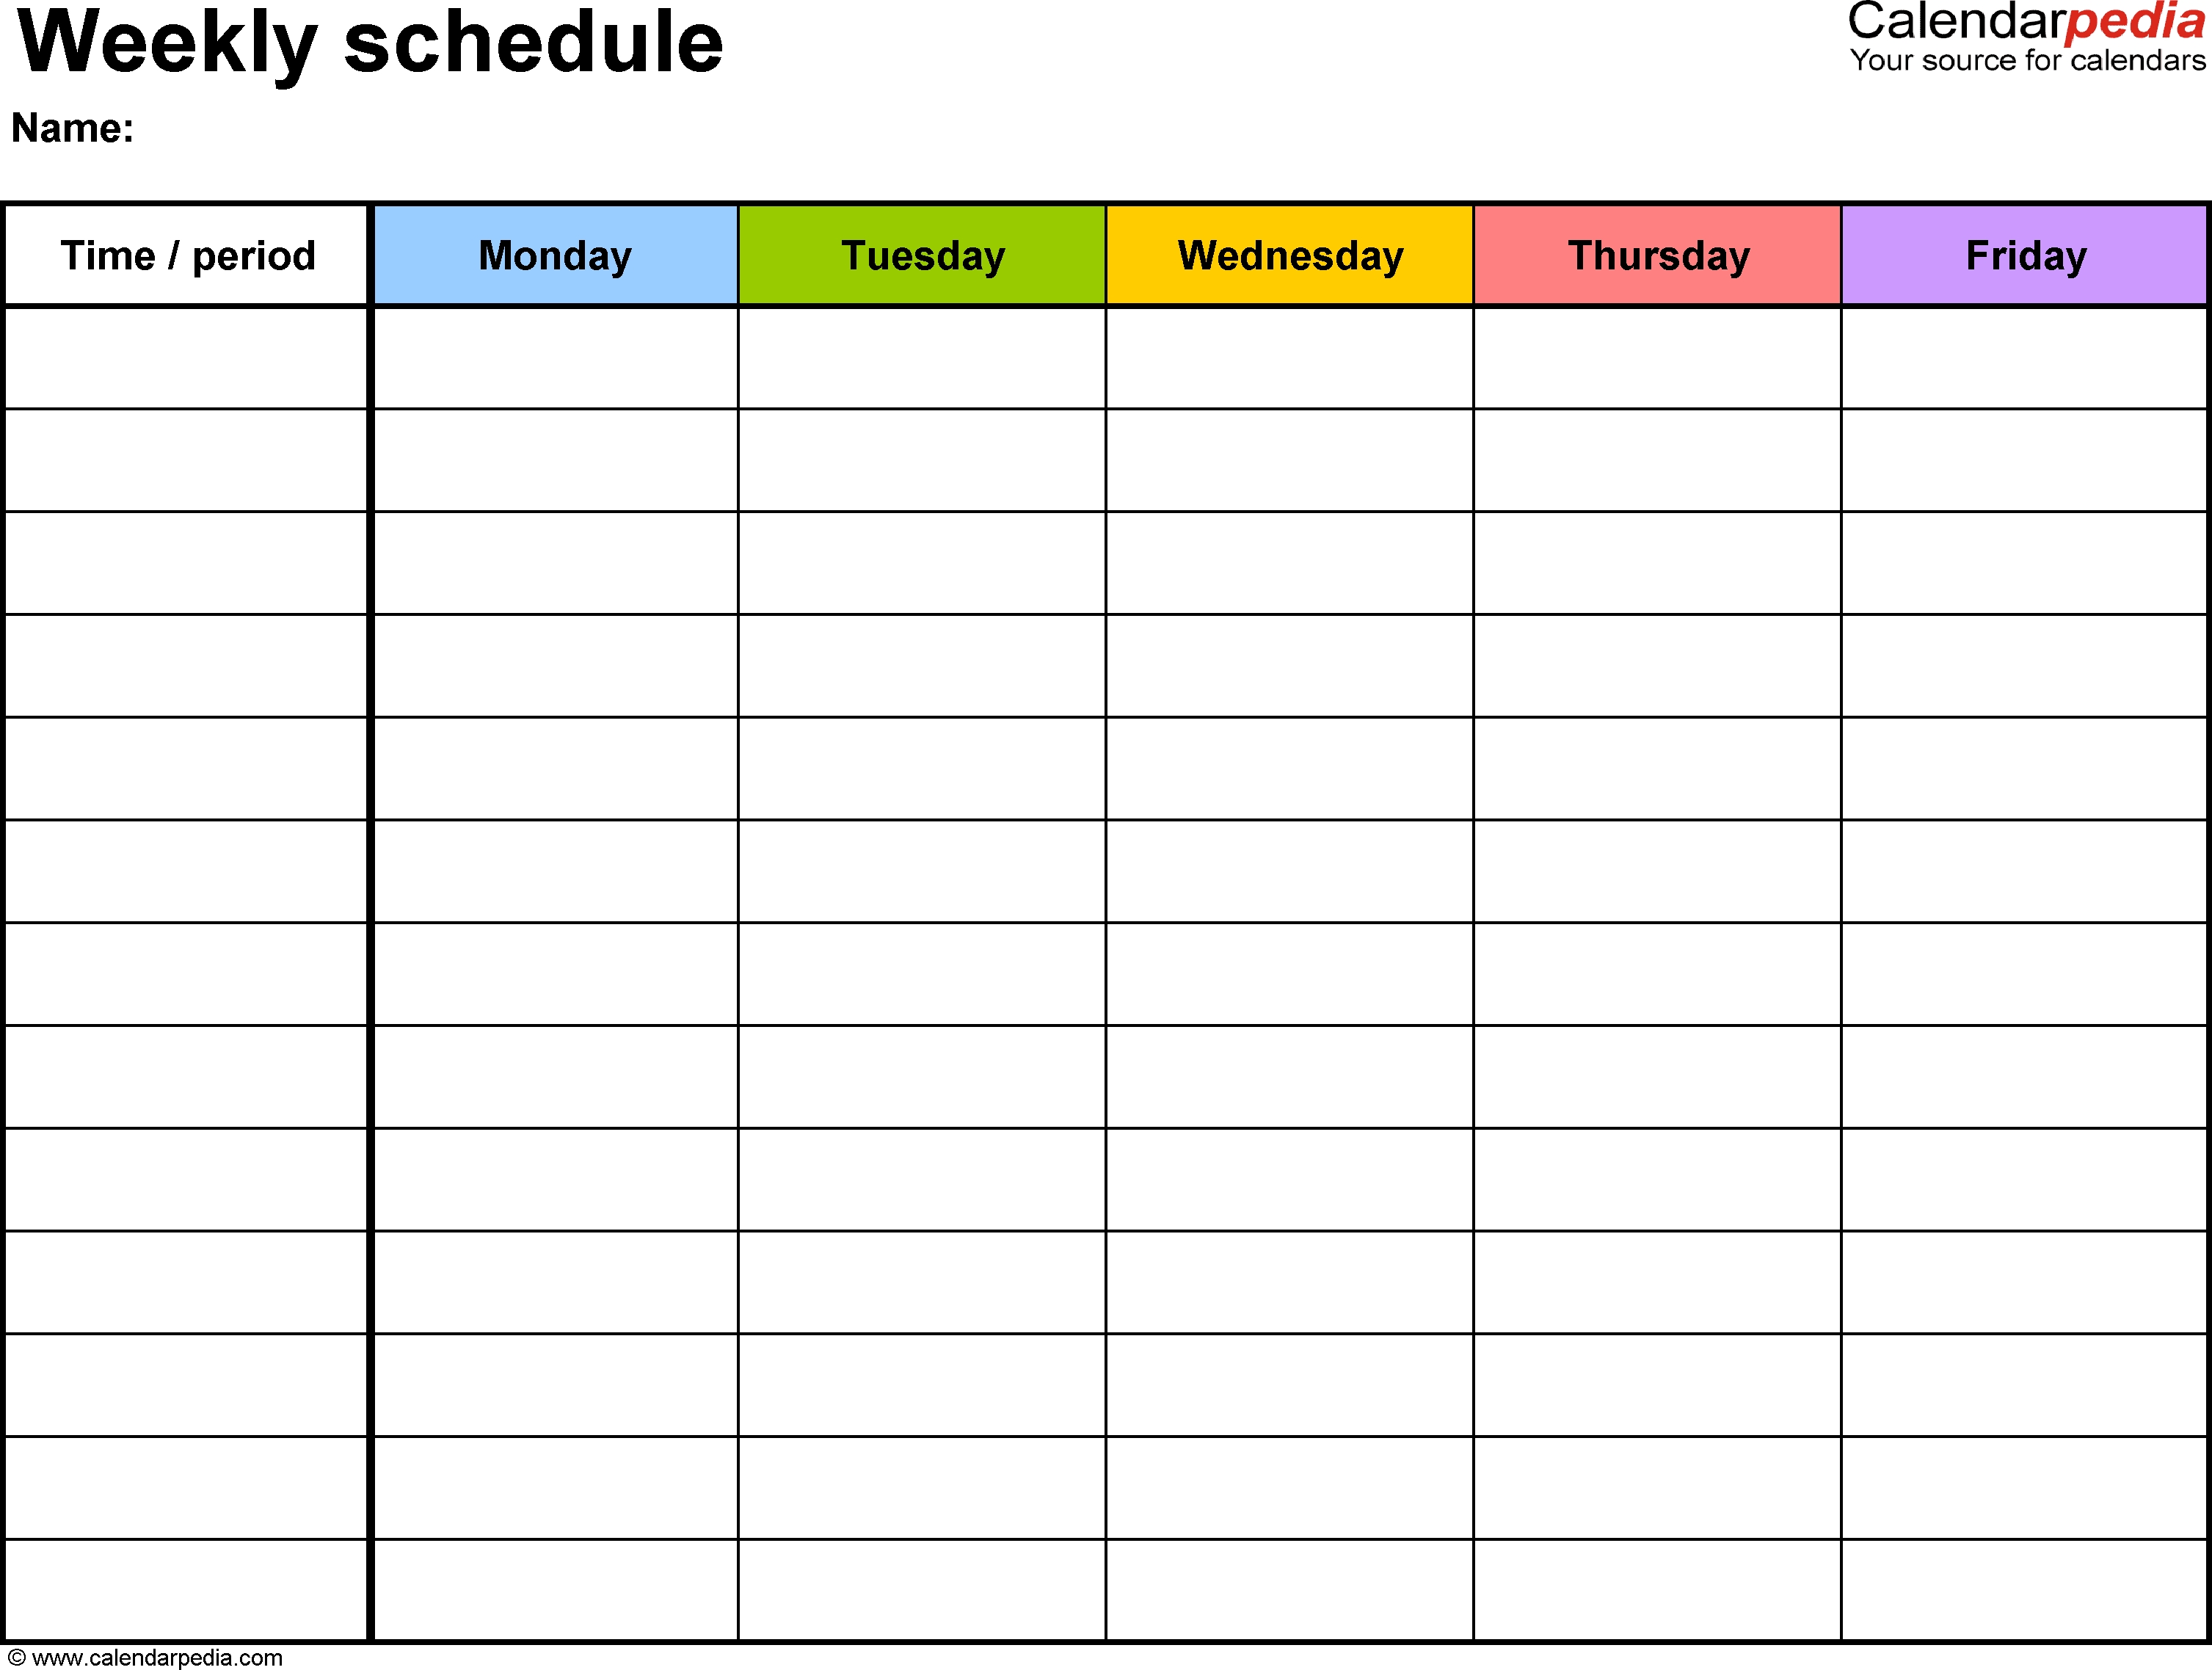 Free Weekly Schedule Templates For Word - 18 Templates  Monday To Friday Planner